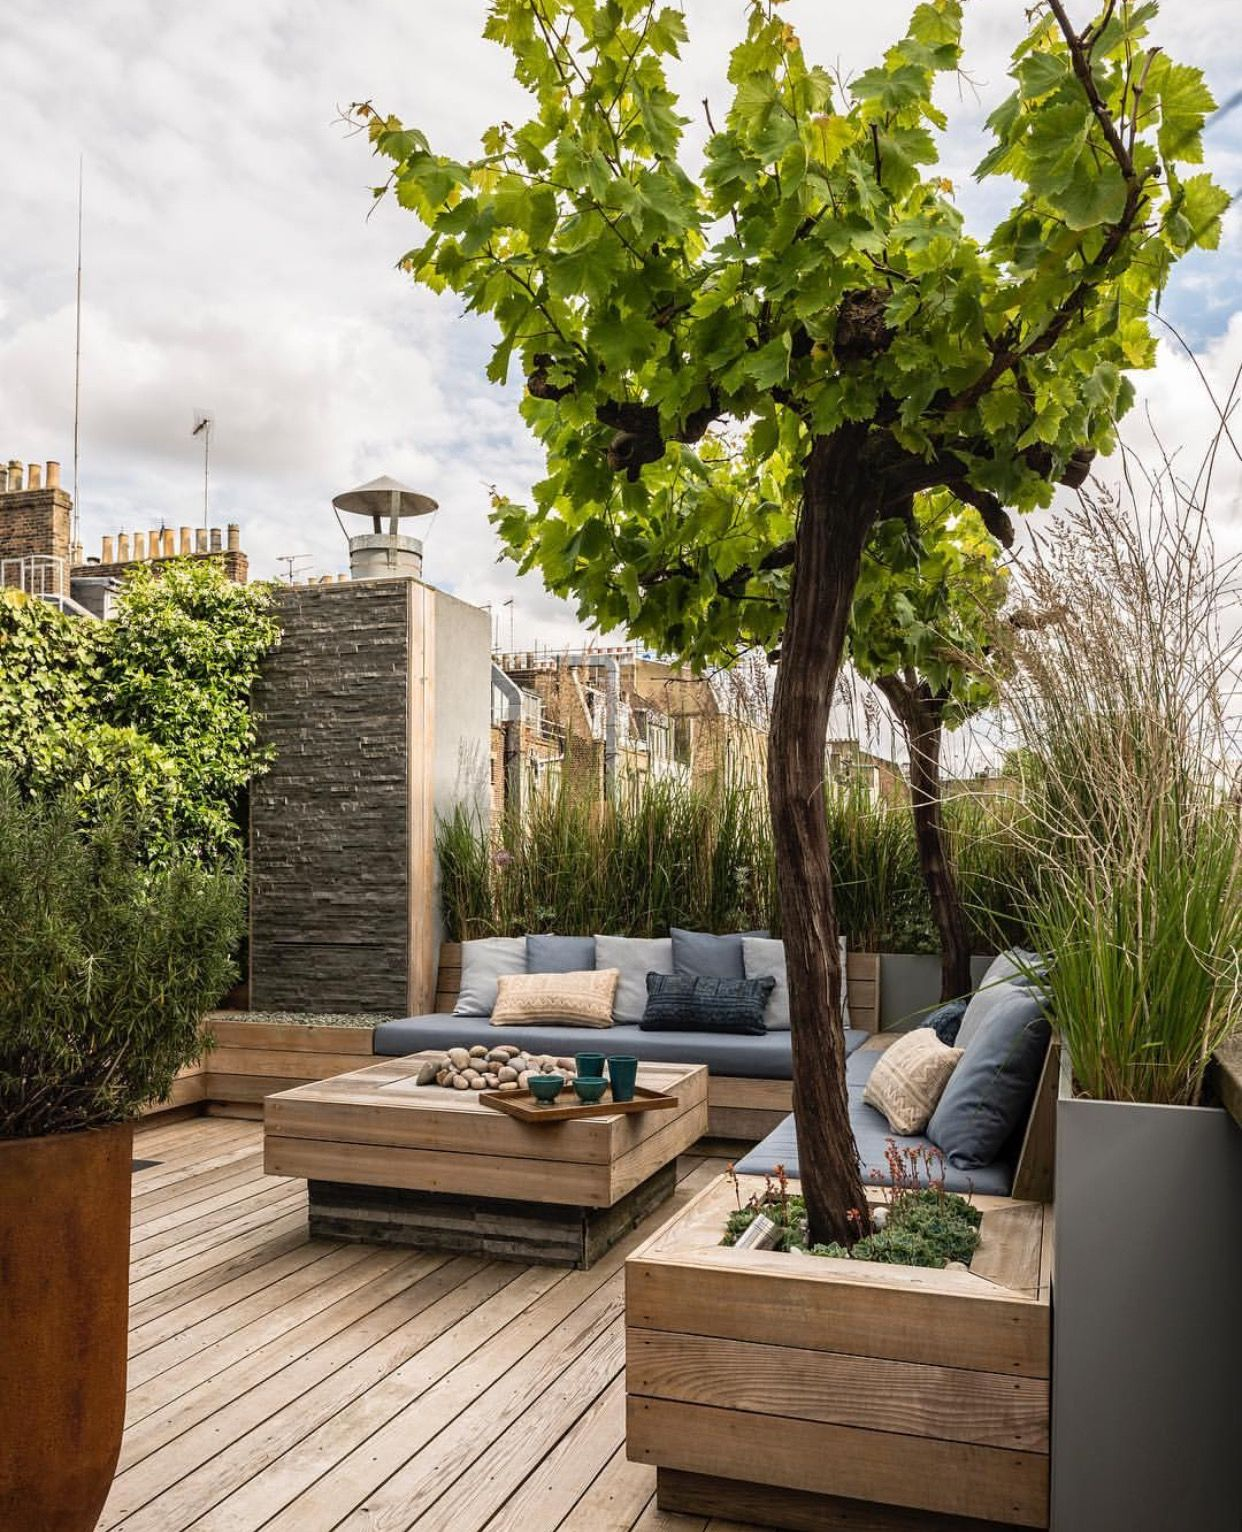 Simple Terrace Garden: When You Live In The Beautiful South Africa, An Outdoors